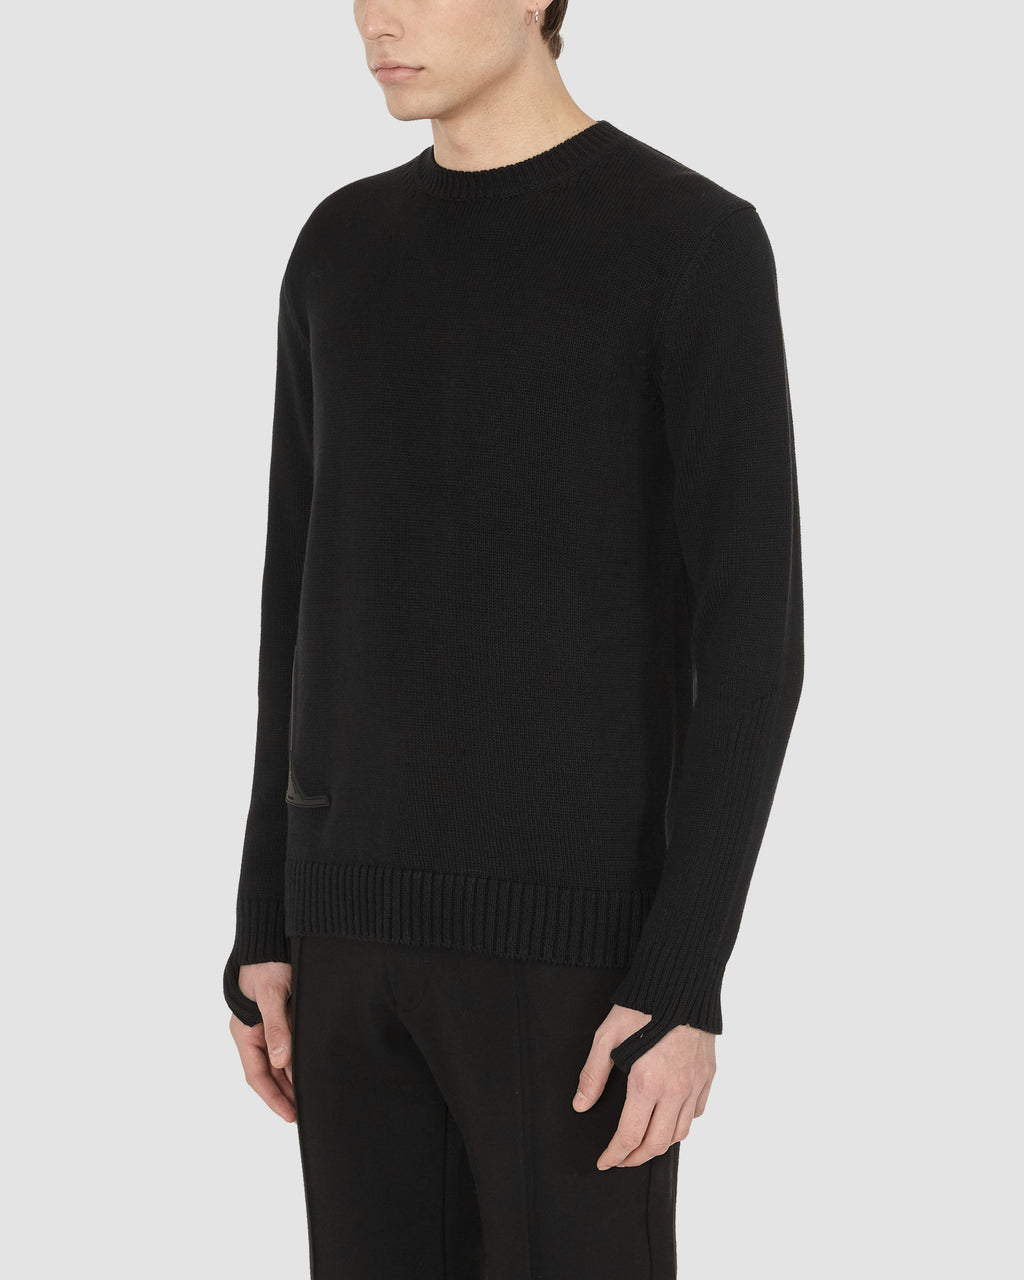 1017 ALYX 9SM | HANDCUFF SWEATER | Knitwear | BLACK, Google Shopping, Knitwear, Man, MEN, S20, S20EXSH